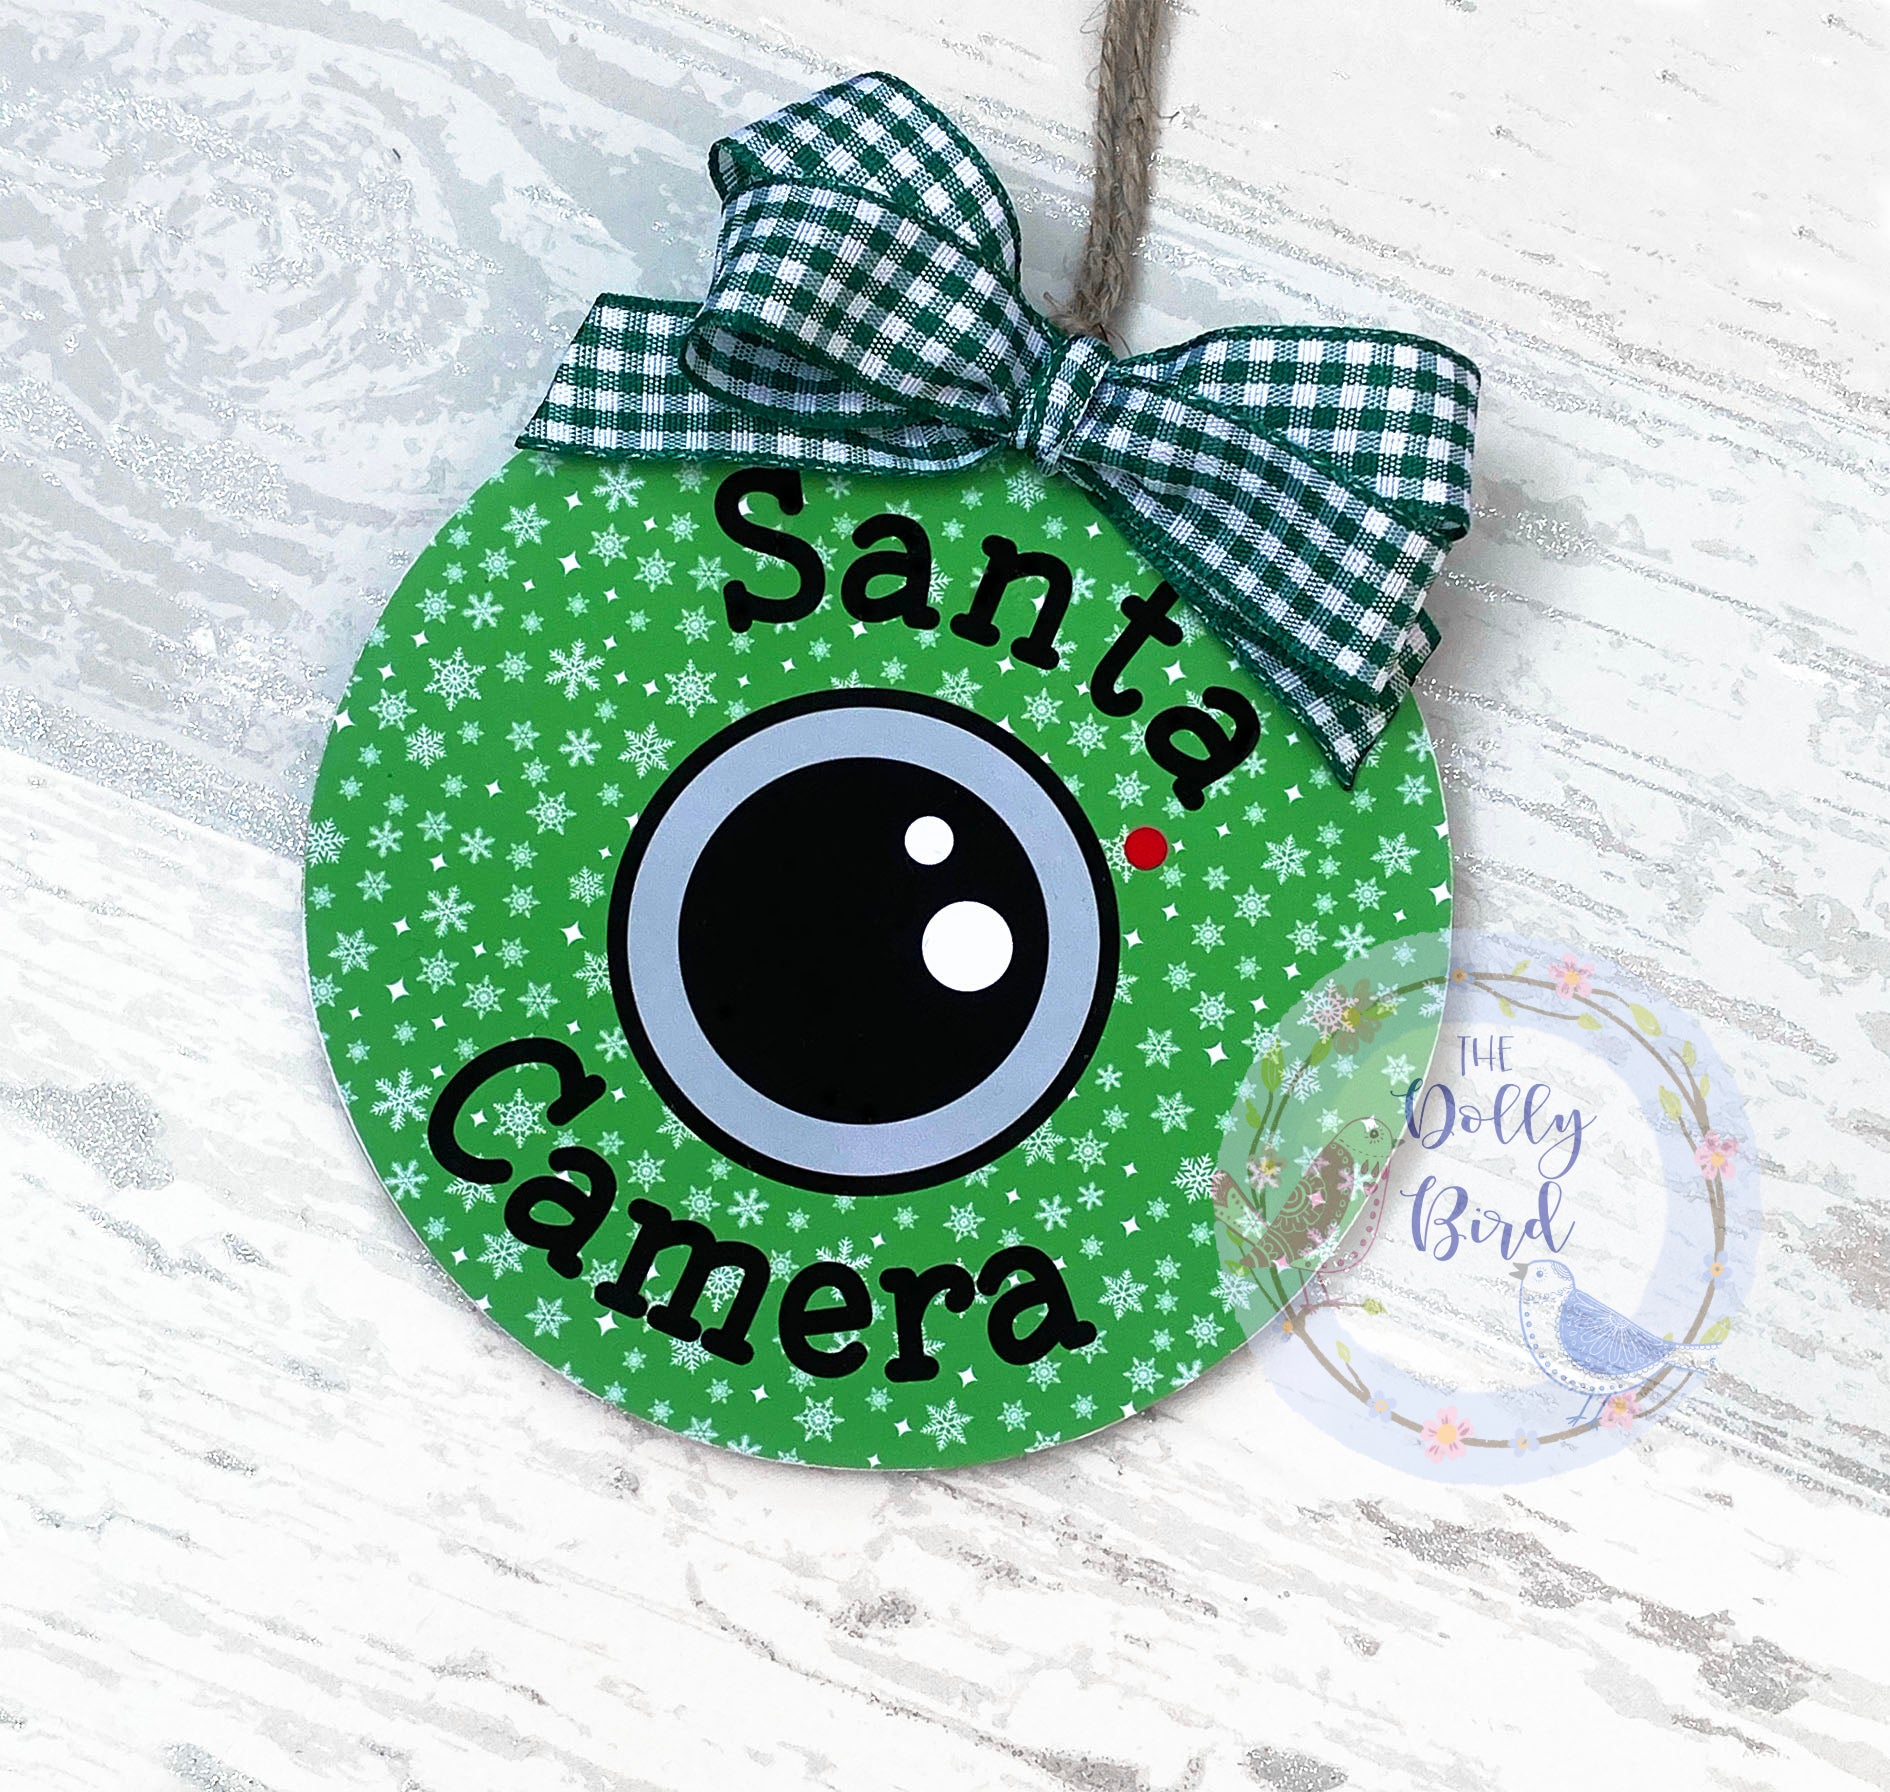 Santa Camera, Santa Cam, Elf Camera, North Pole Camera, Santa Camera Tree Decoration, Good Behaviour Camera, Tree Ornament